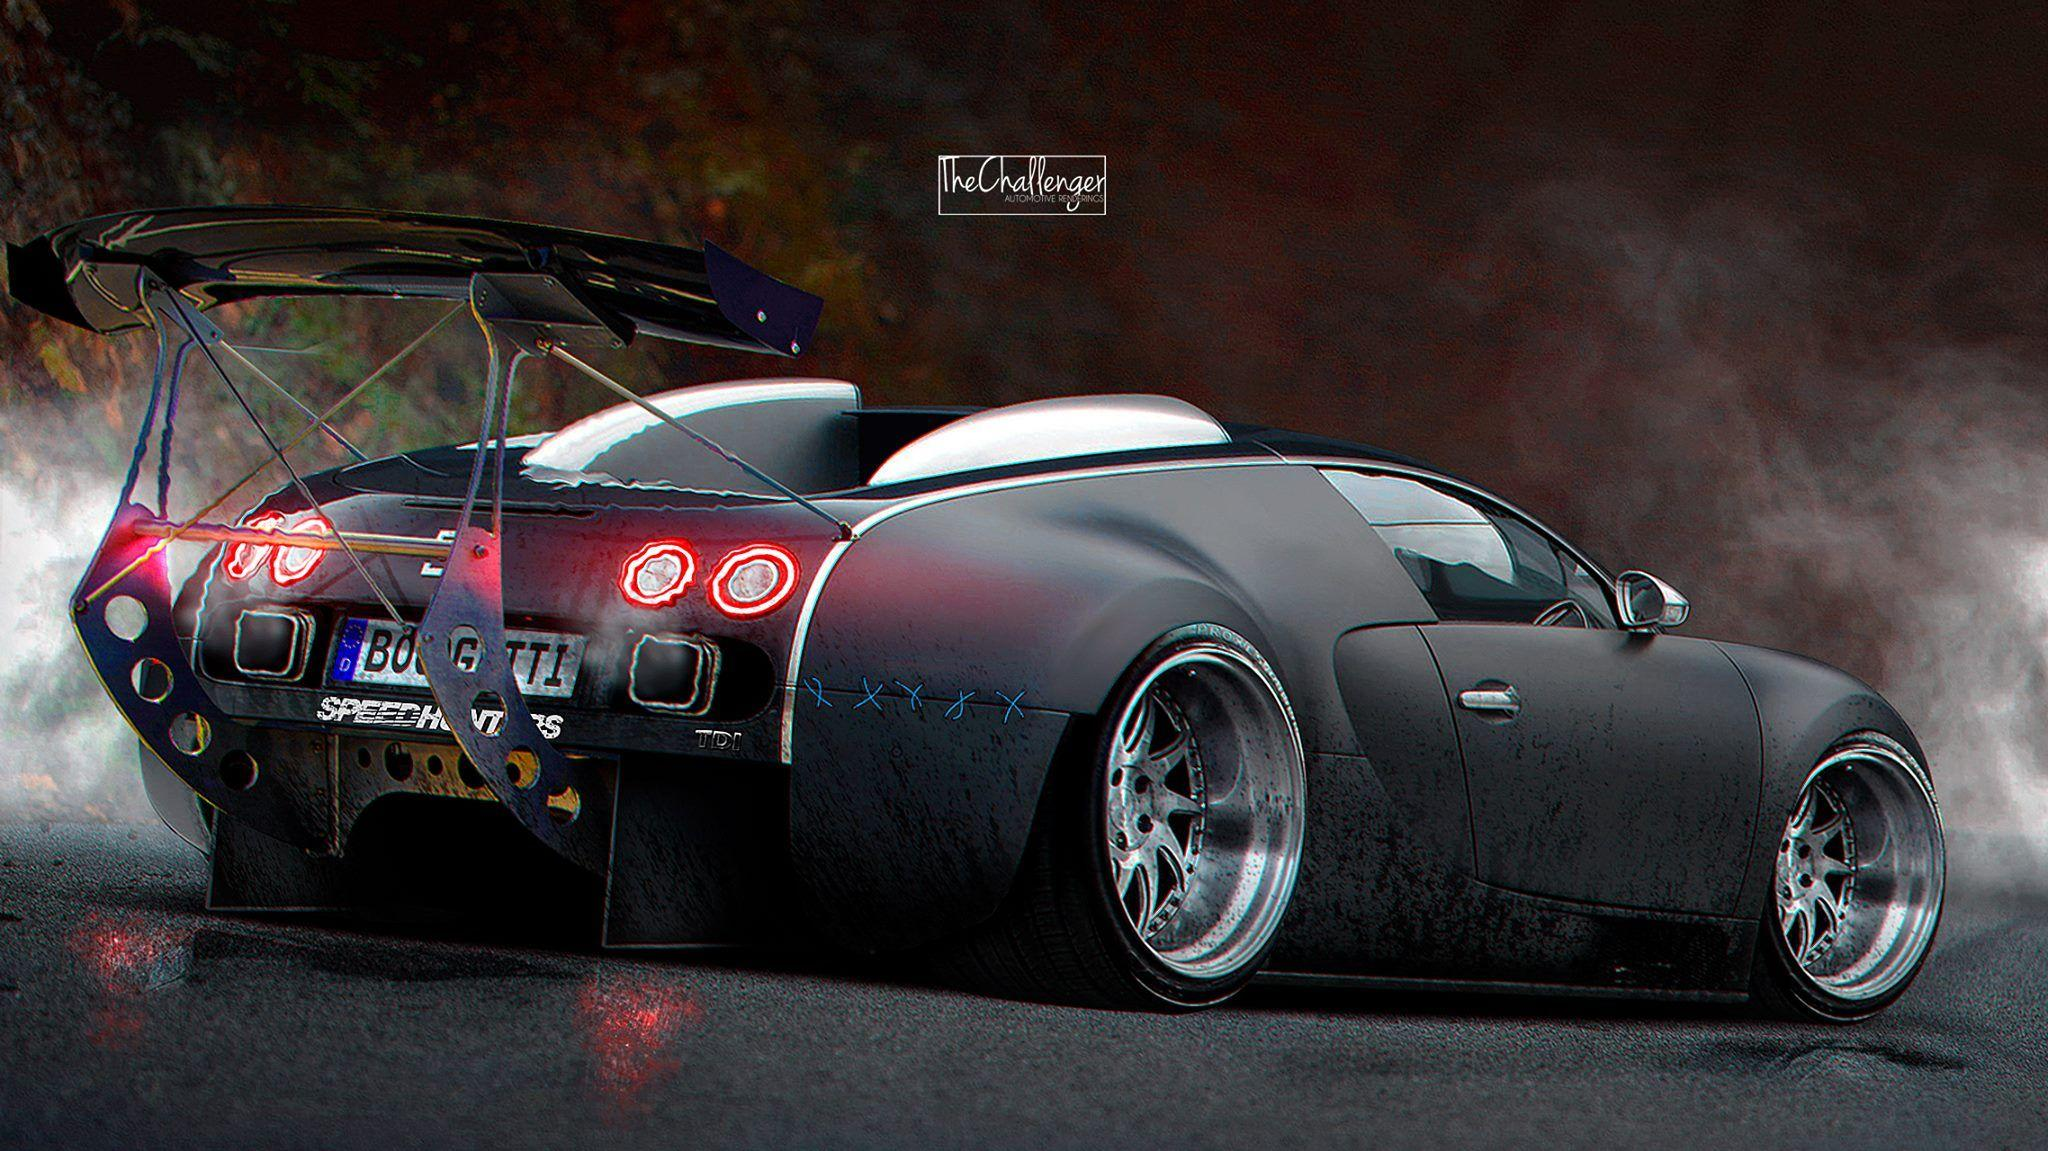 Bugatti Veyron Gets Stanced, Luckily It's a Rendering - autoevolution